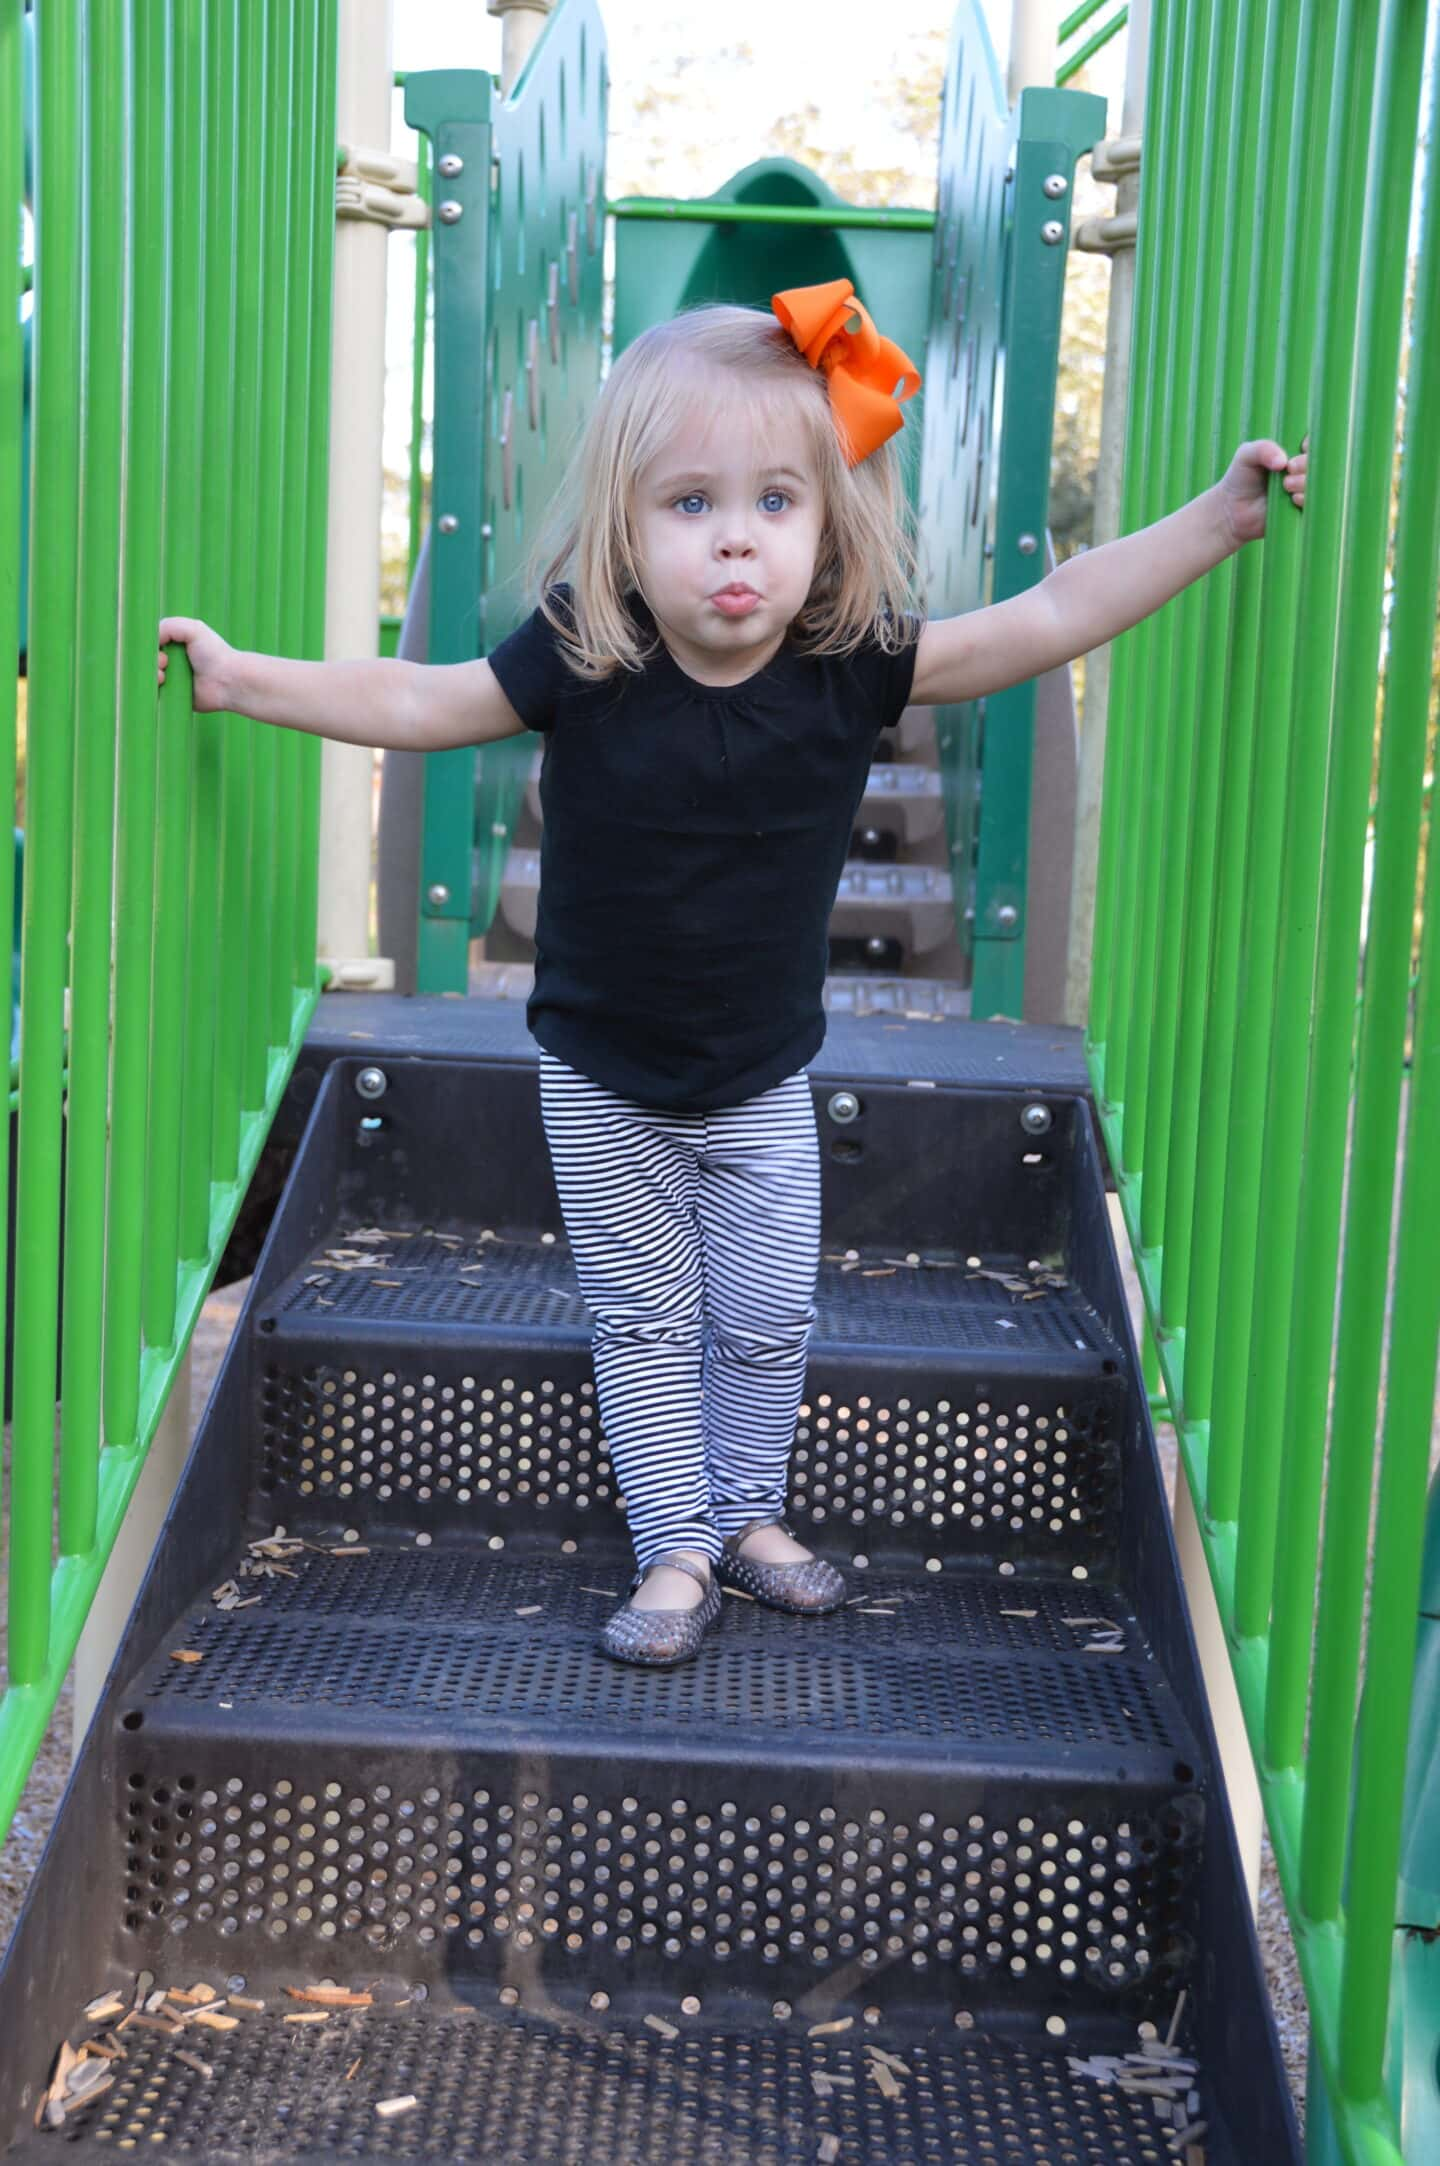 5 Tips to Ease Transitions and Avoid Meltdowns for Toddlers